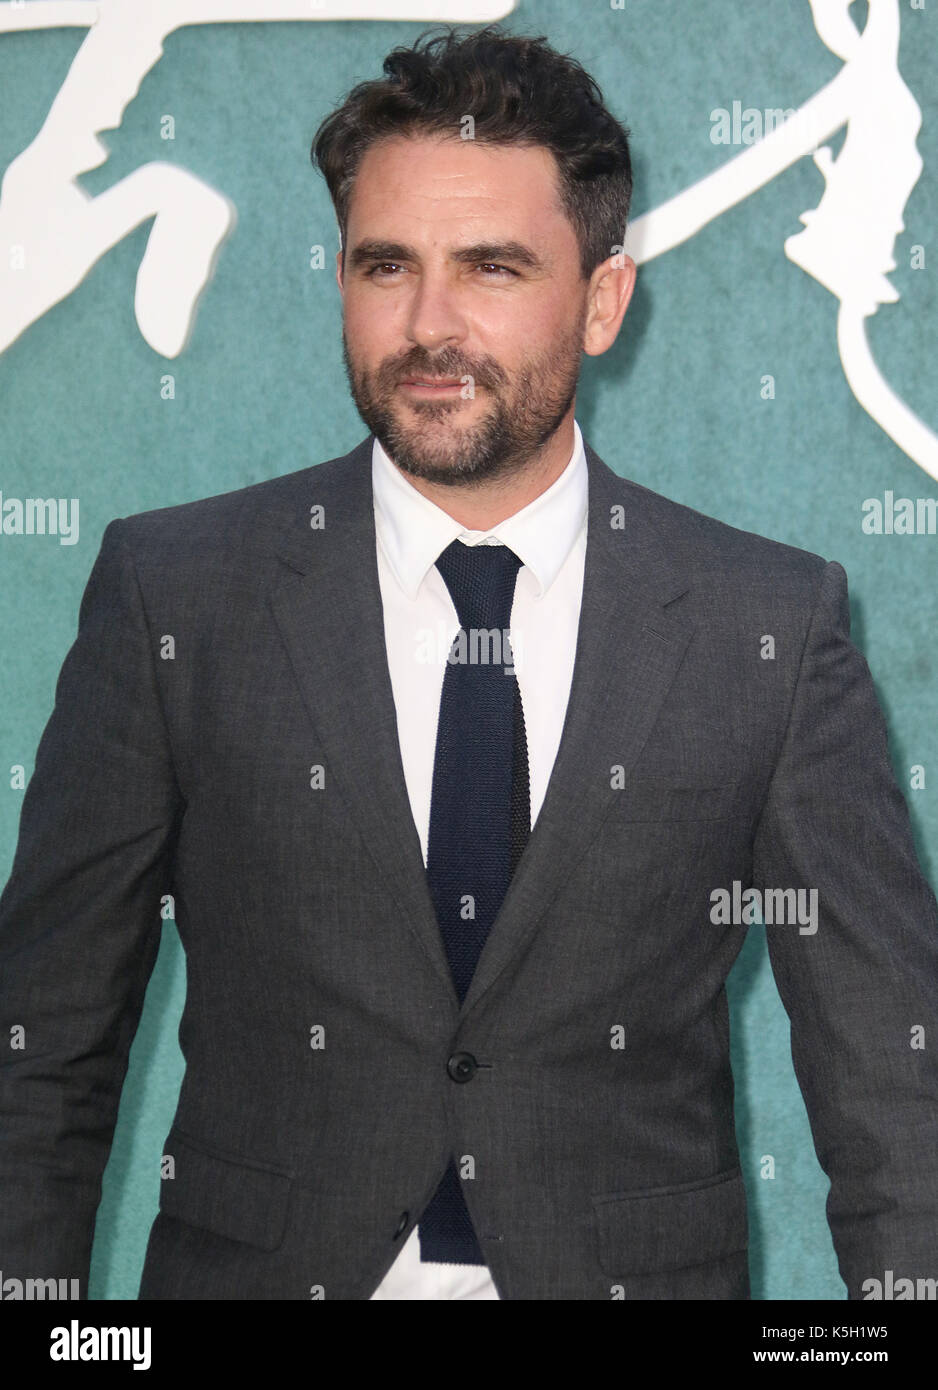 LONDON - SEP 06, 2017: Levison Wood attends the Mother UK film premiere at Odeon Leicester Square in London - Stock Image